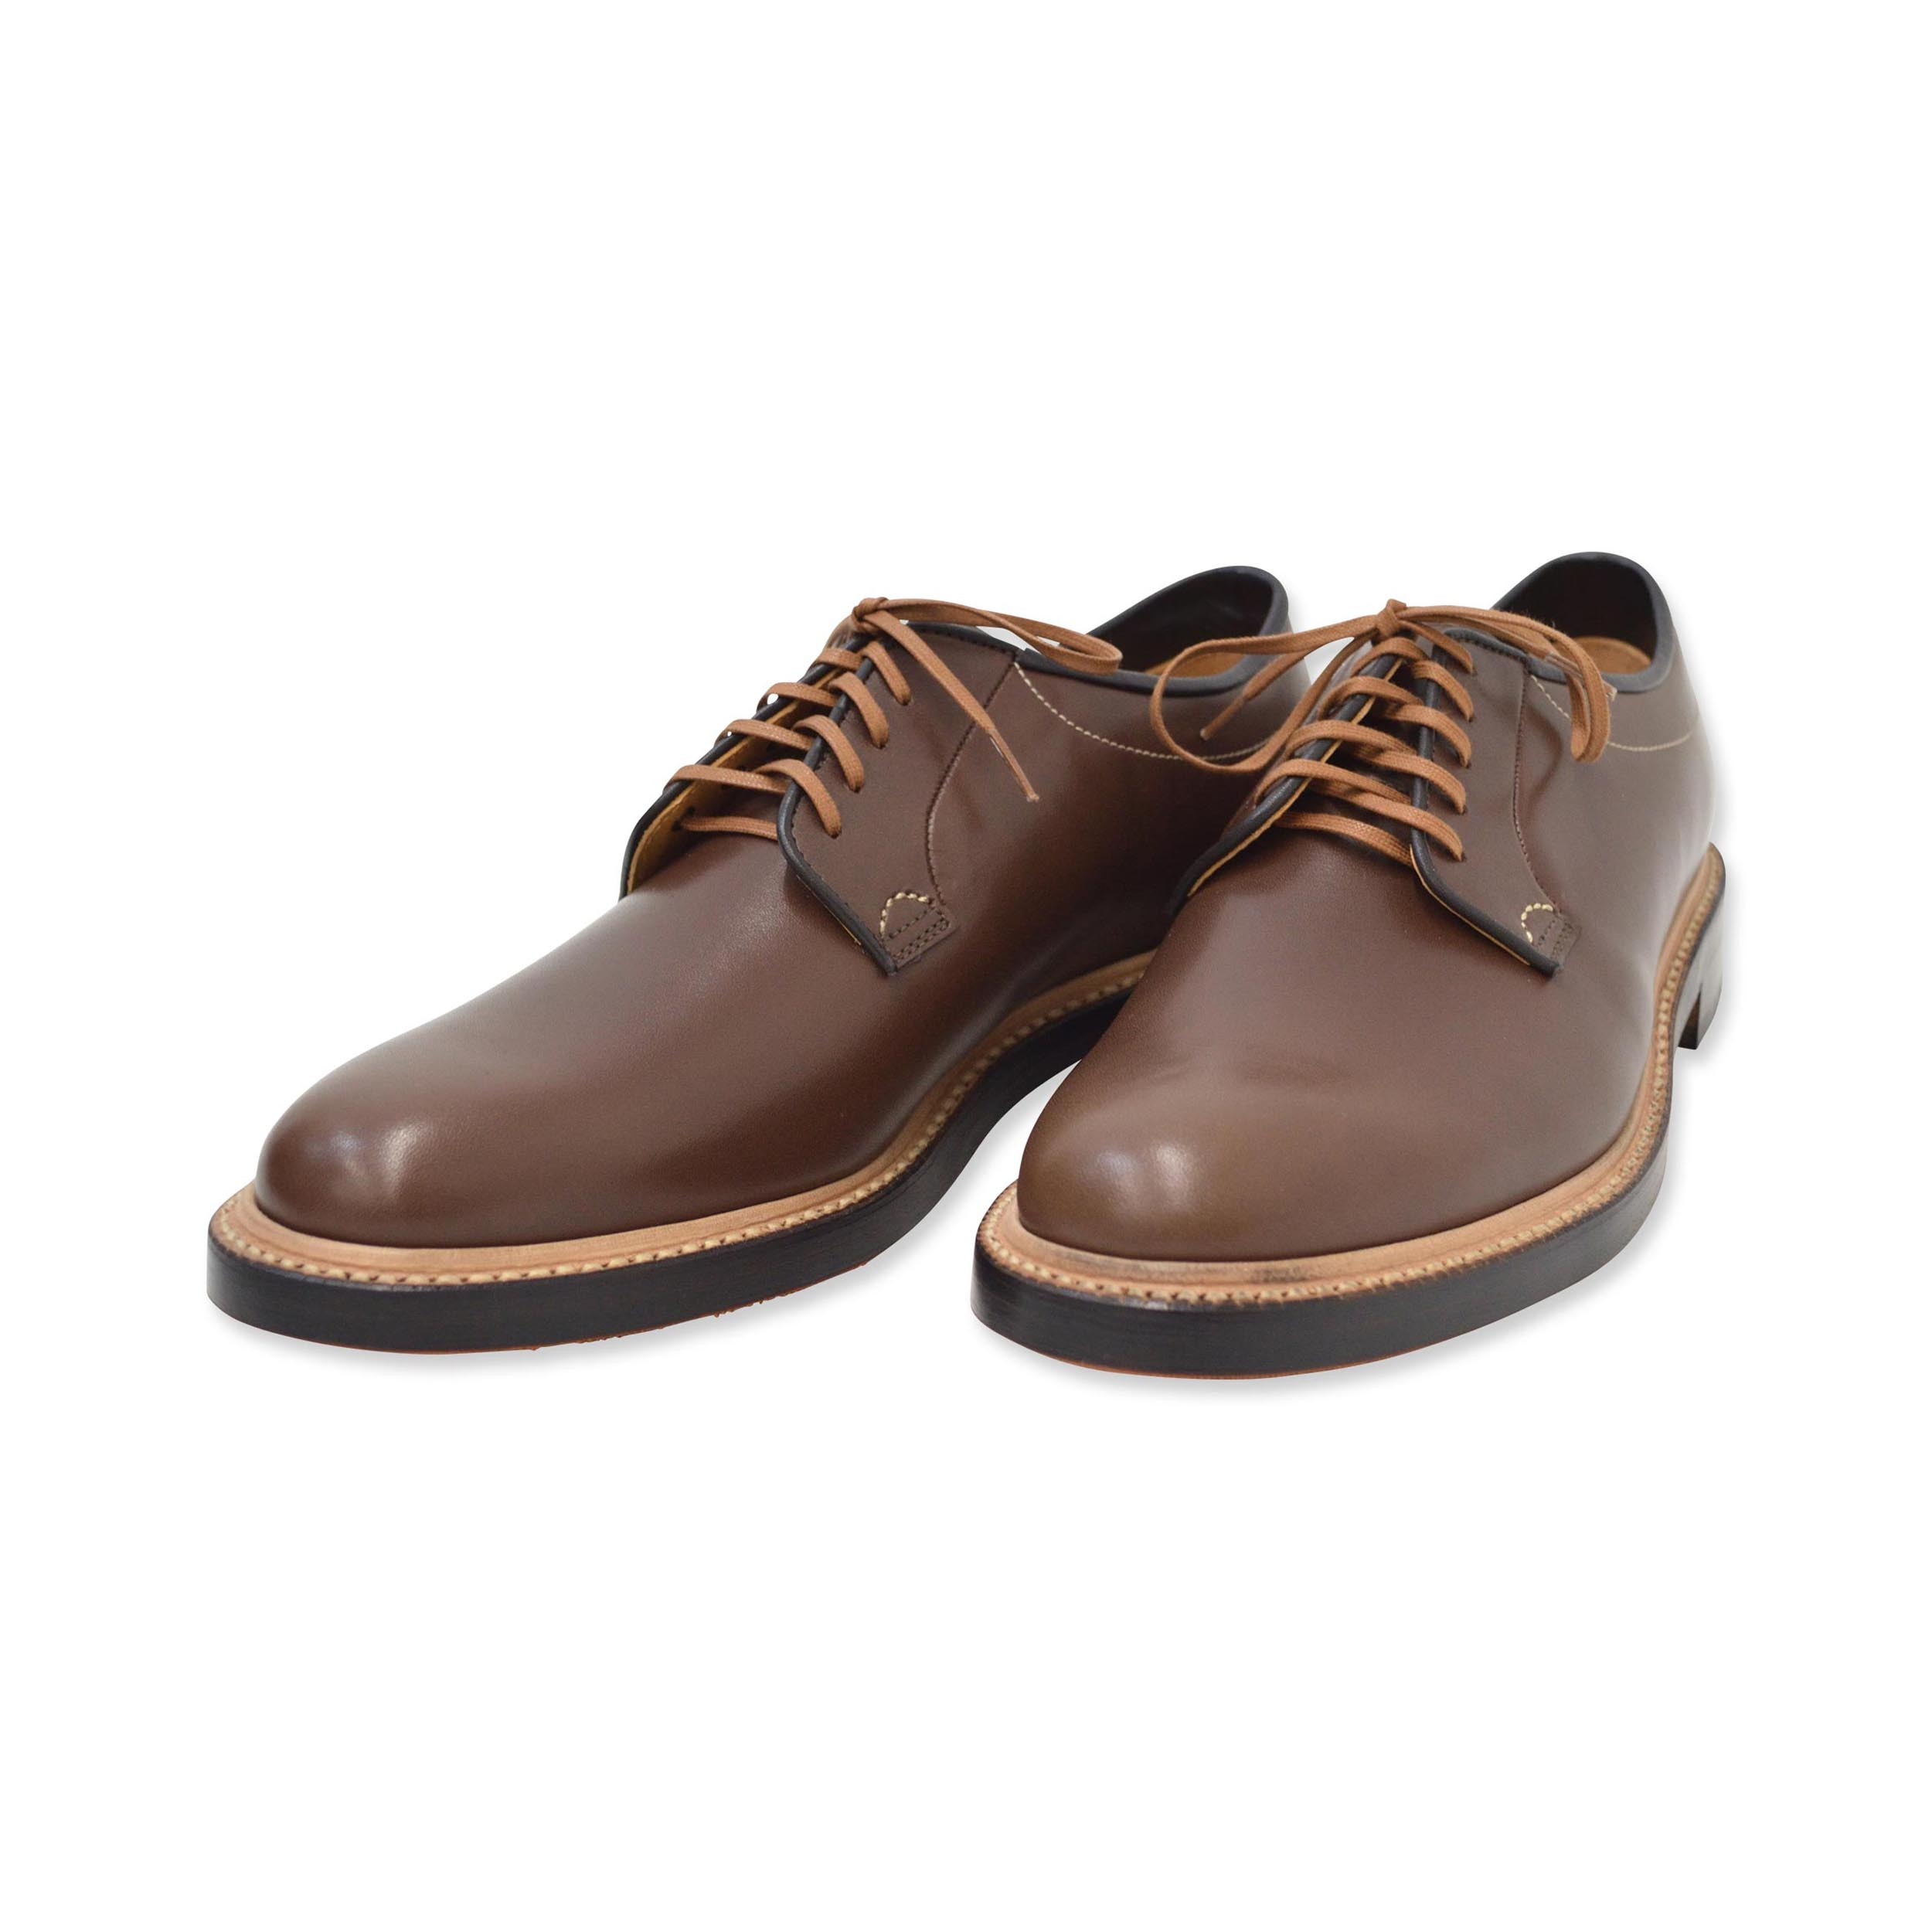 5 eye plain toe blucher oxford